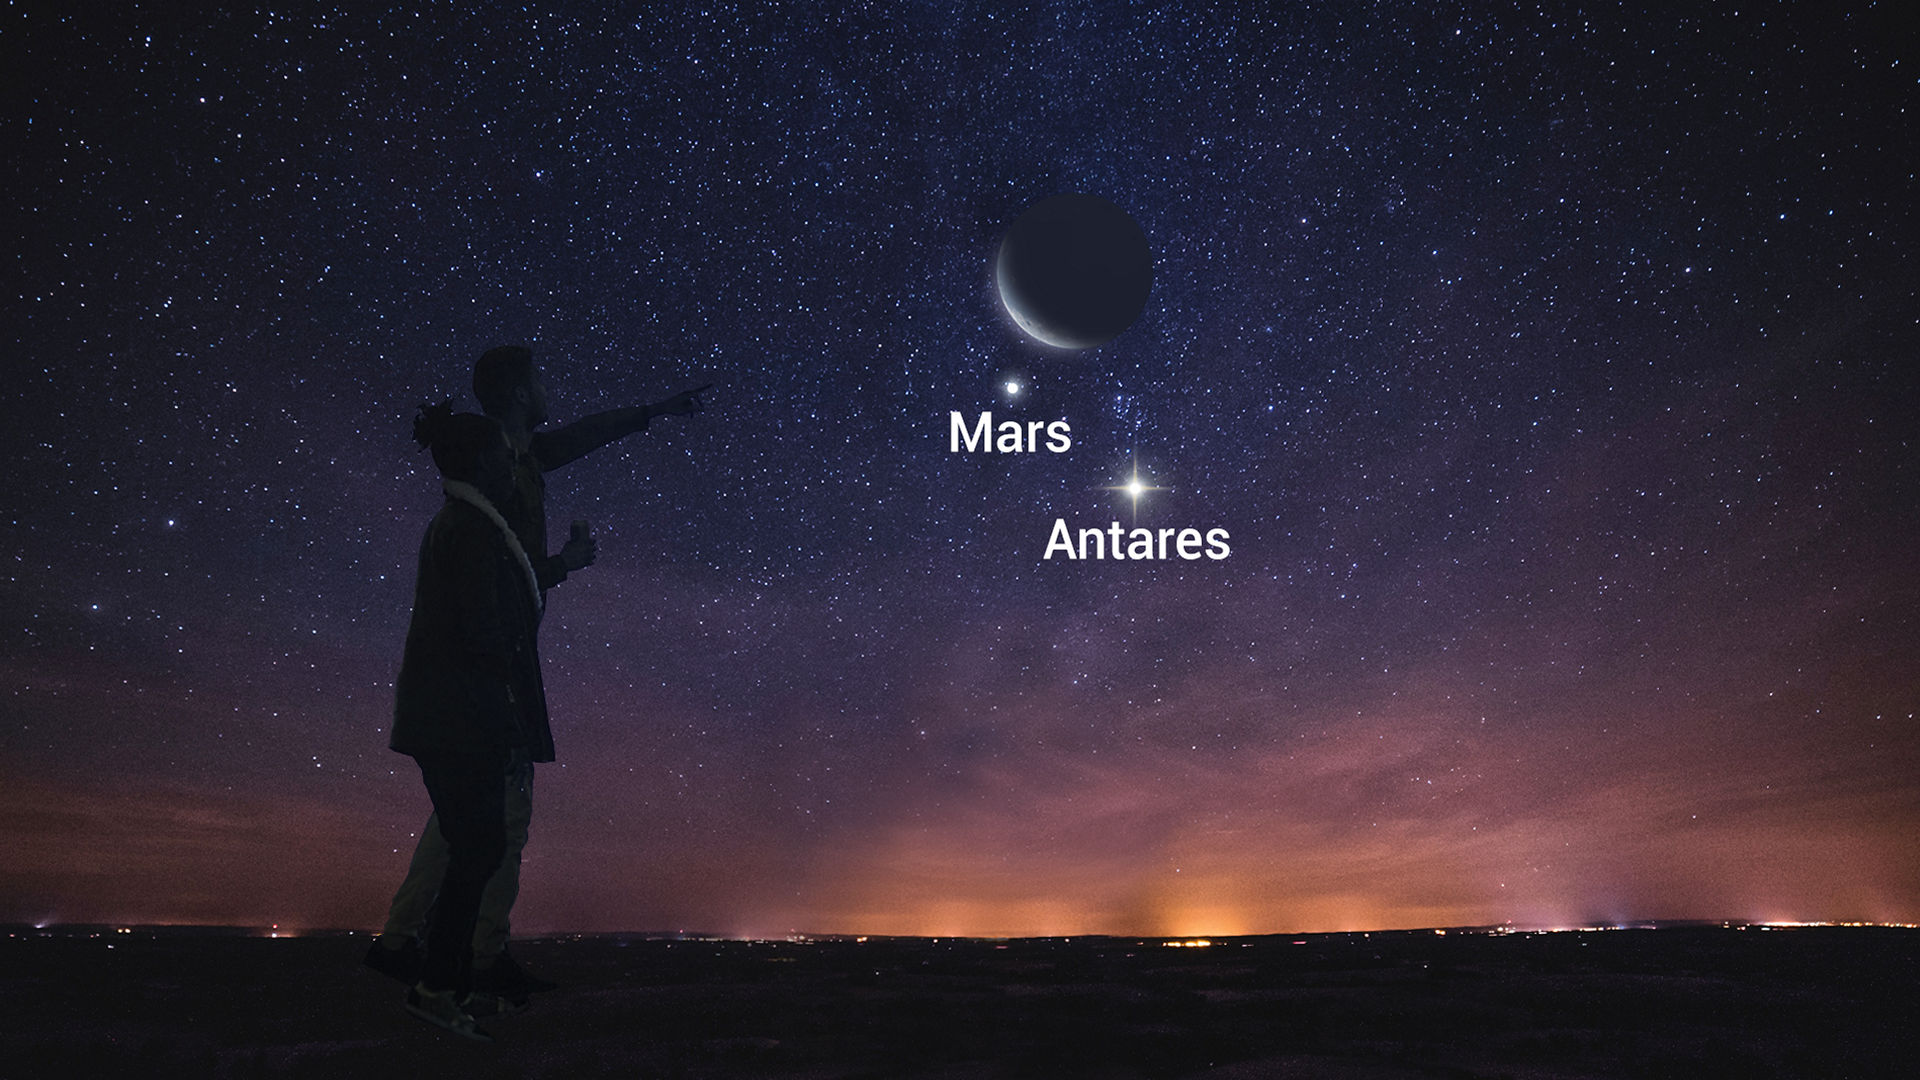 Old Moon Shines with Mars and Bright Antares